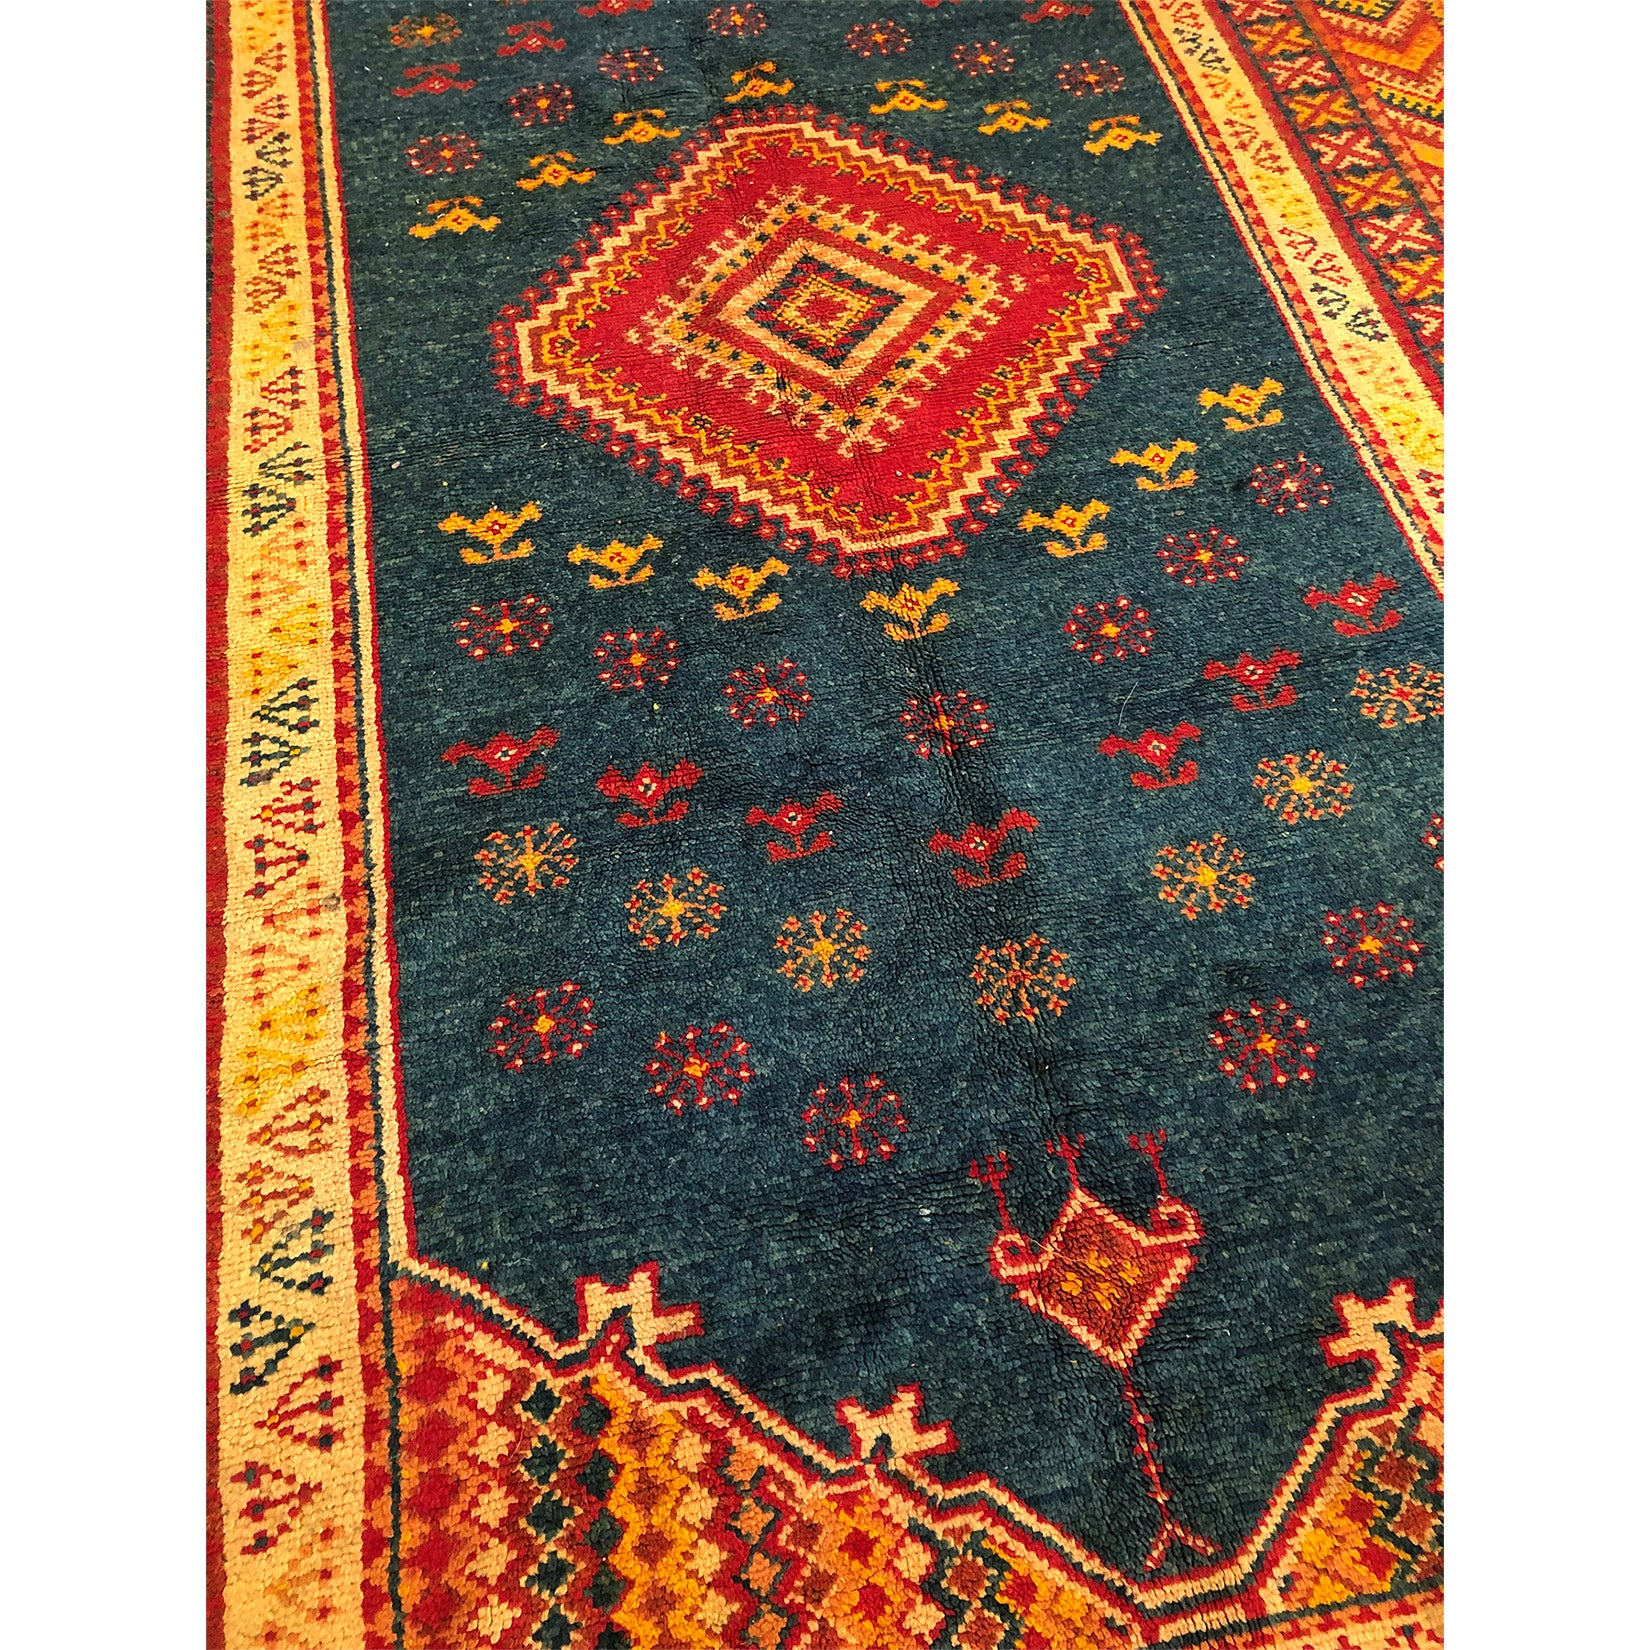 Authentic low pile rust colored berber carpet - Kantara | Moroccan Rugs